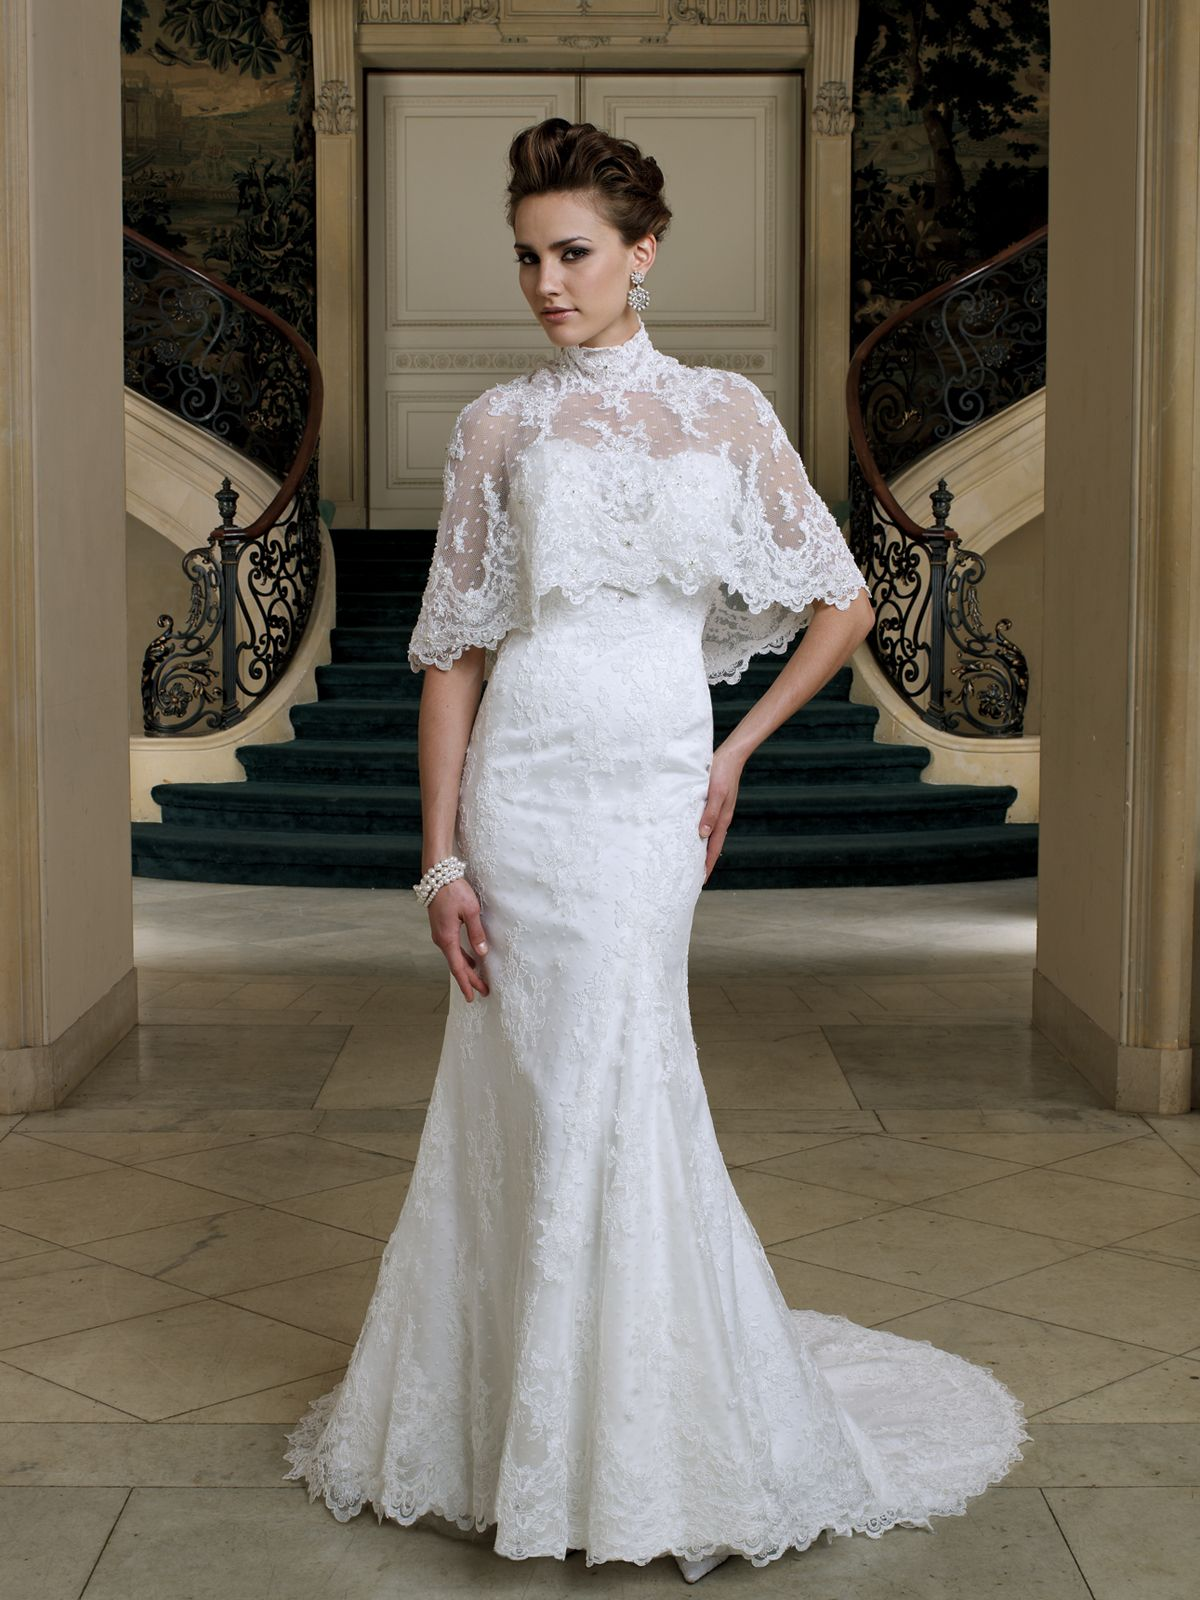 Wedding dresses and bridals gowns by david tutera for mon cheri for